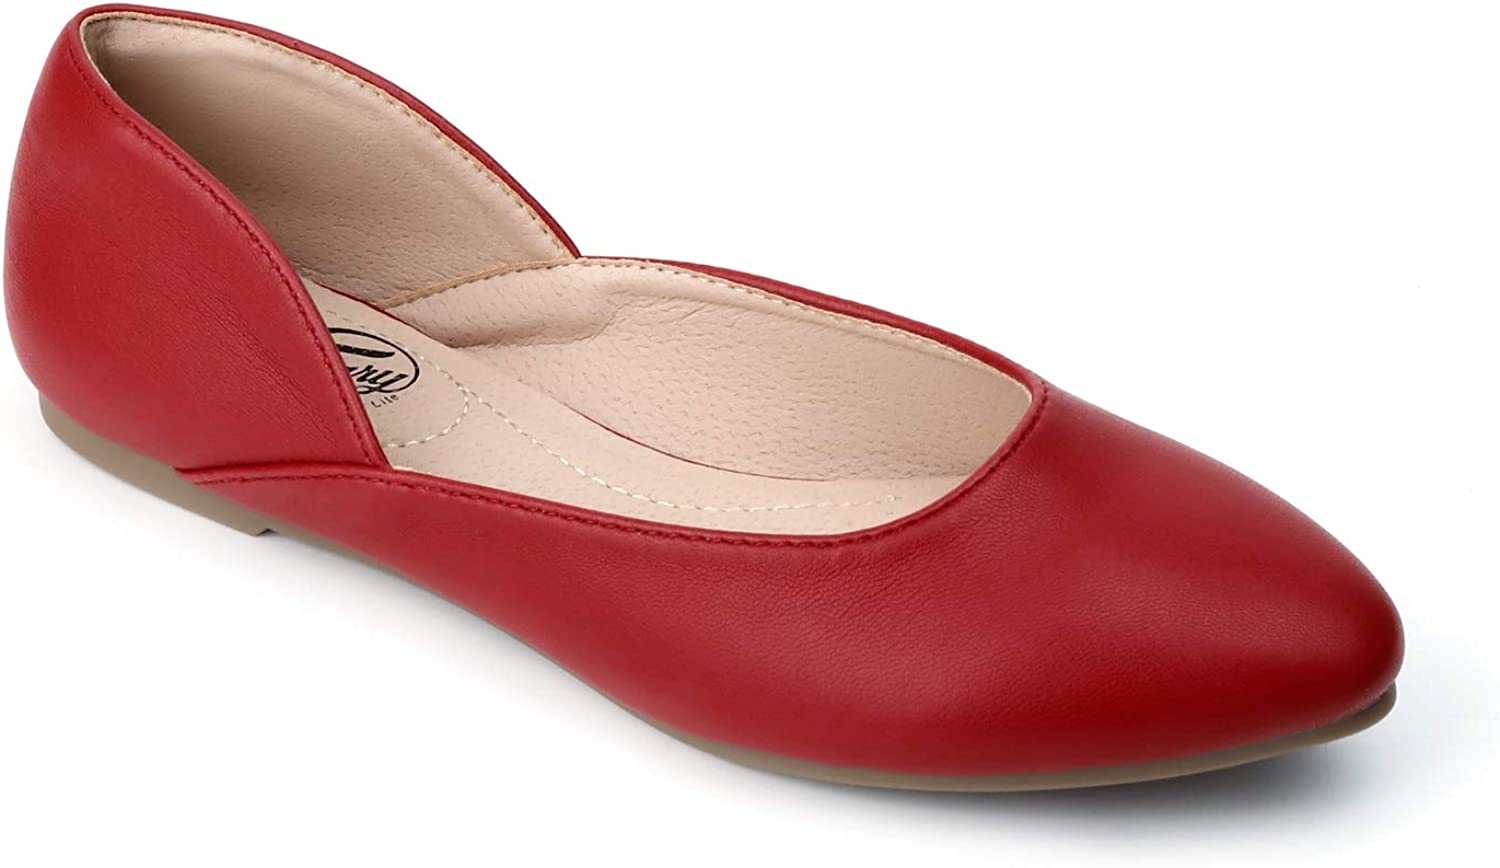 Trary Women's Casual D'Orsay Pointed Toe Ballet Large Dallas Mall discharge sale Sho Slip Flat on